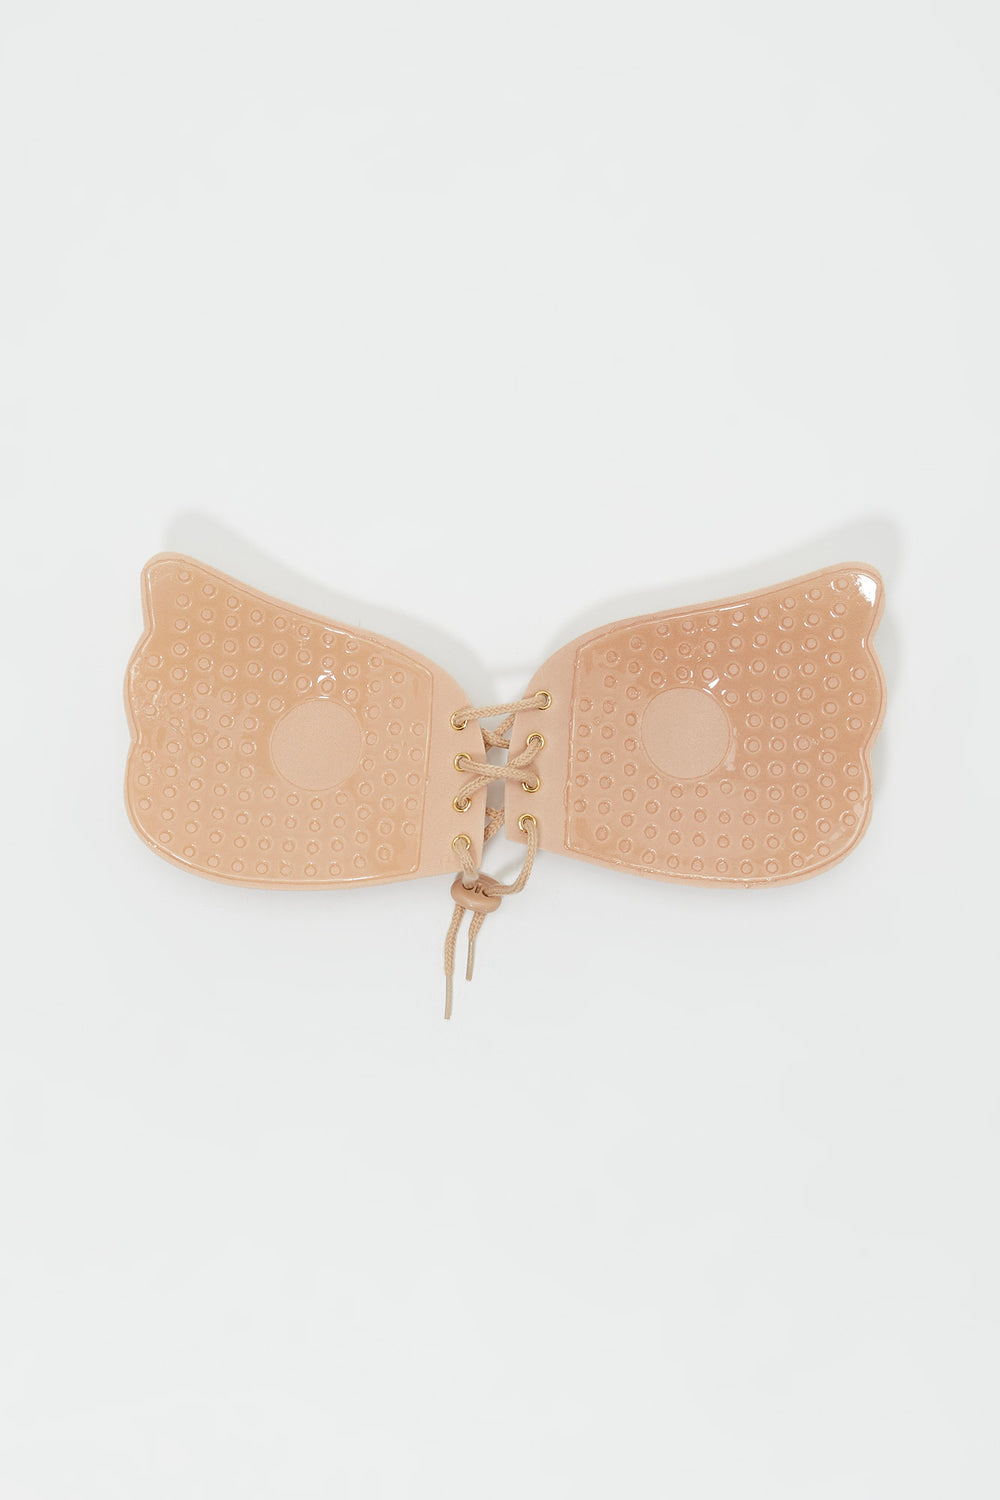 Stick-On Self Adhesive Bra Natural